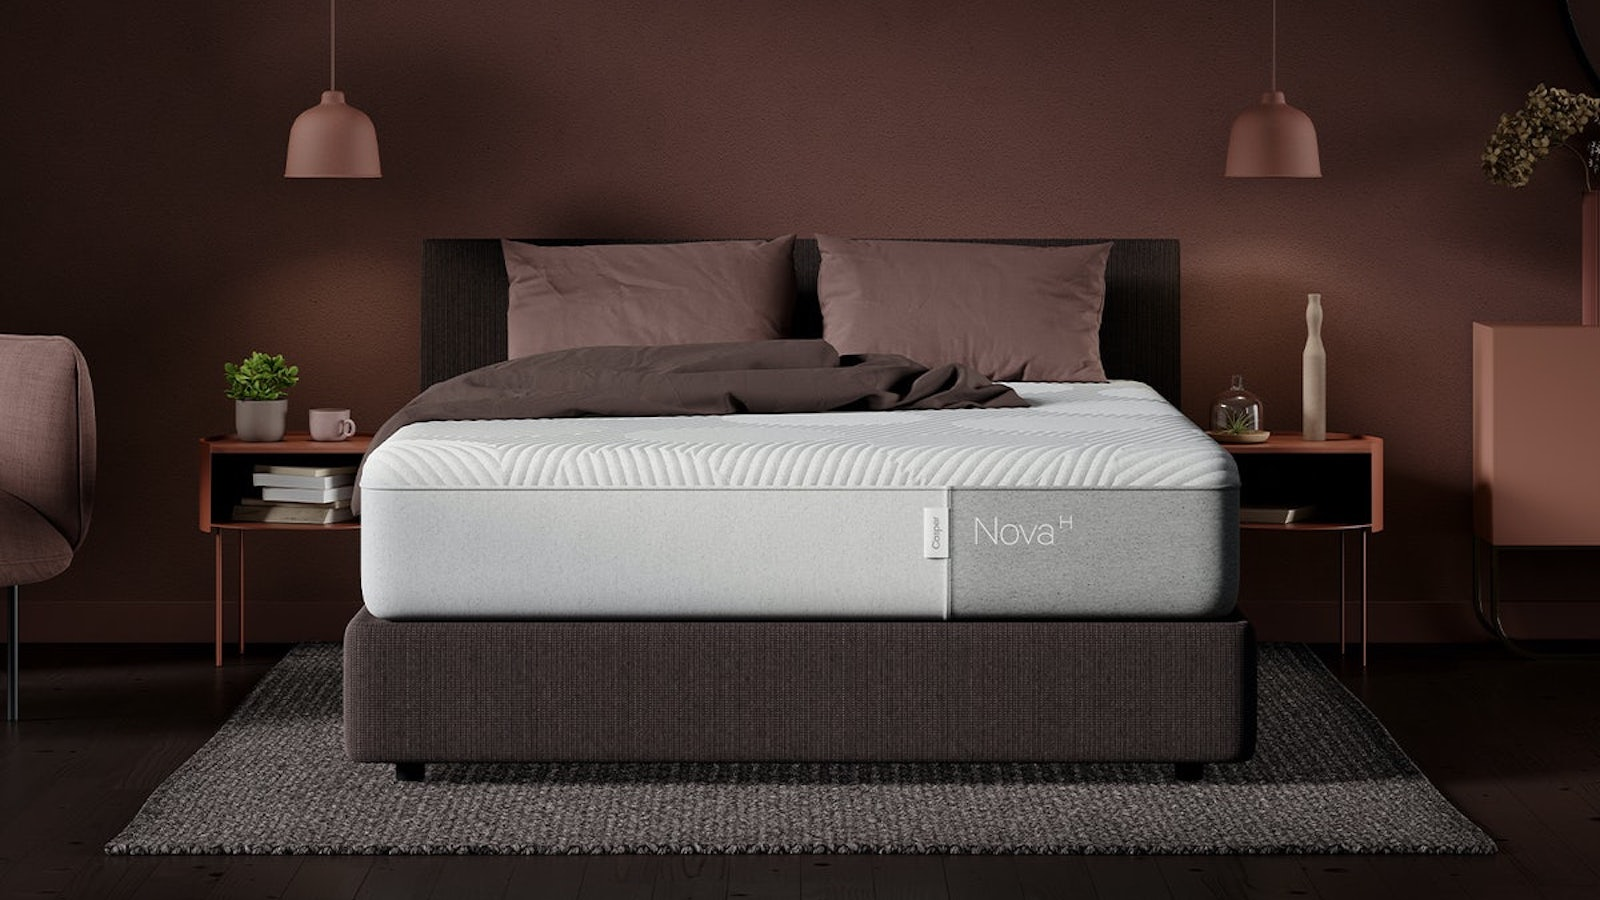 Casper Nova Hybrid Cushioned Mattress supports your body as you sleep